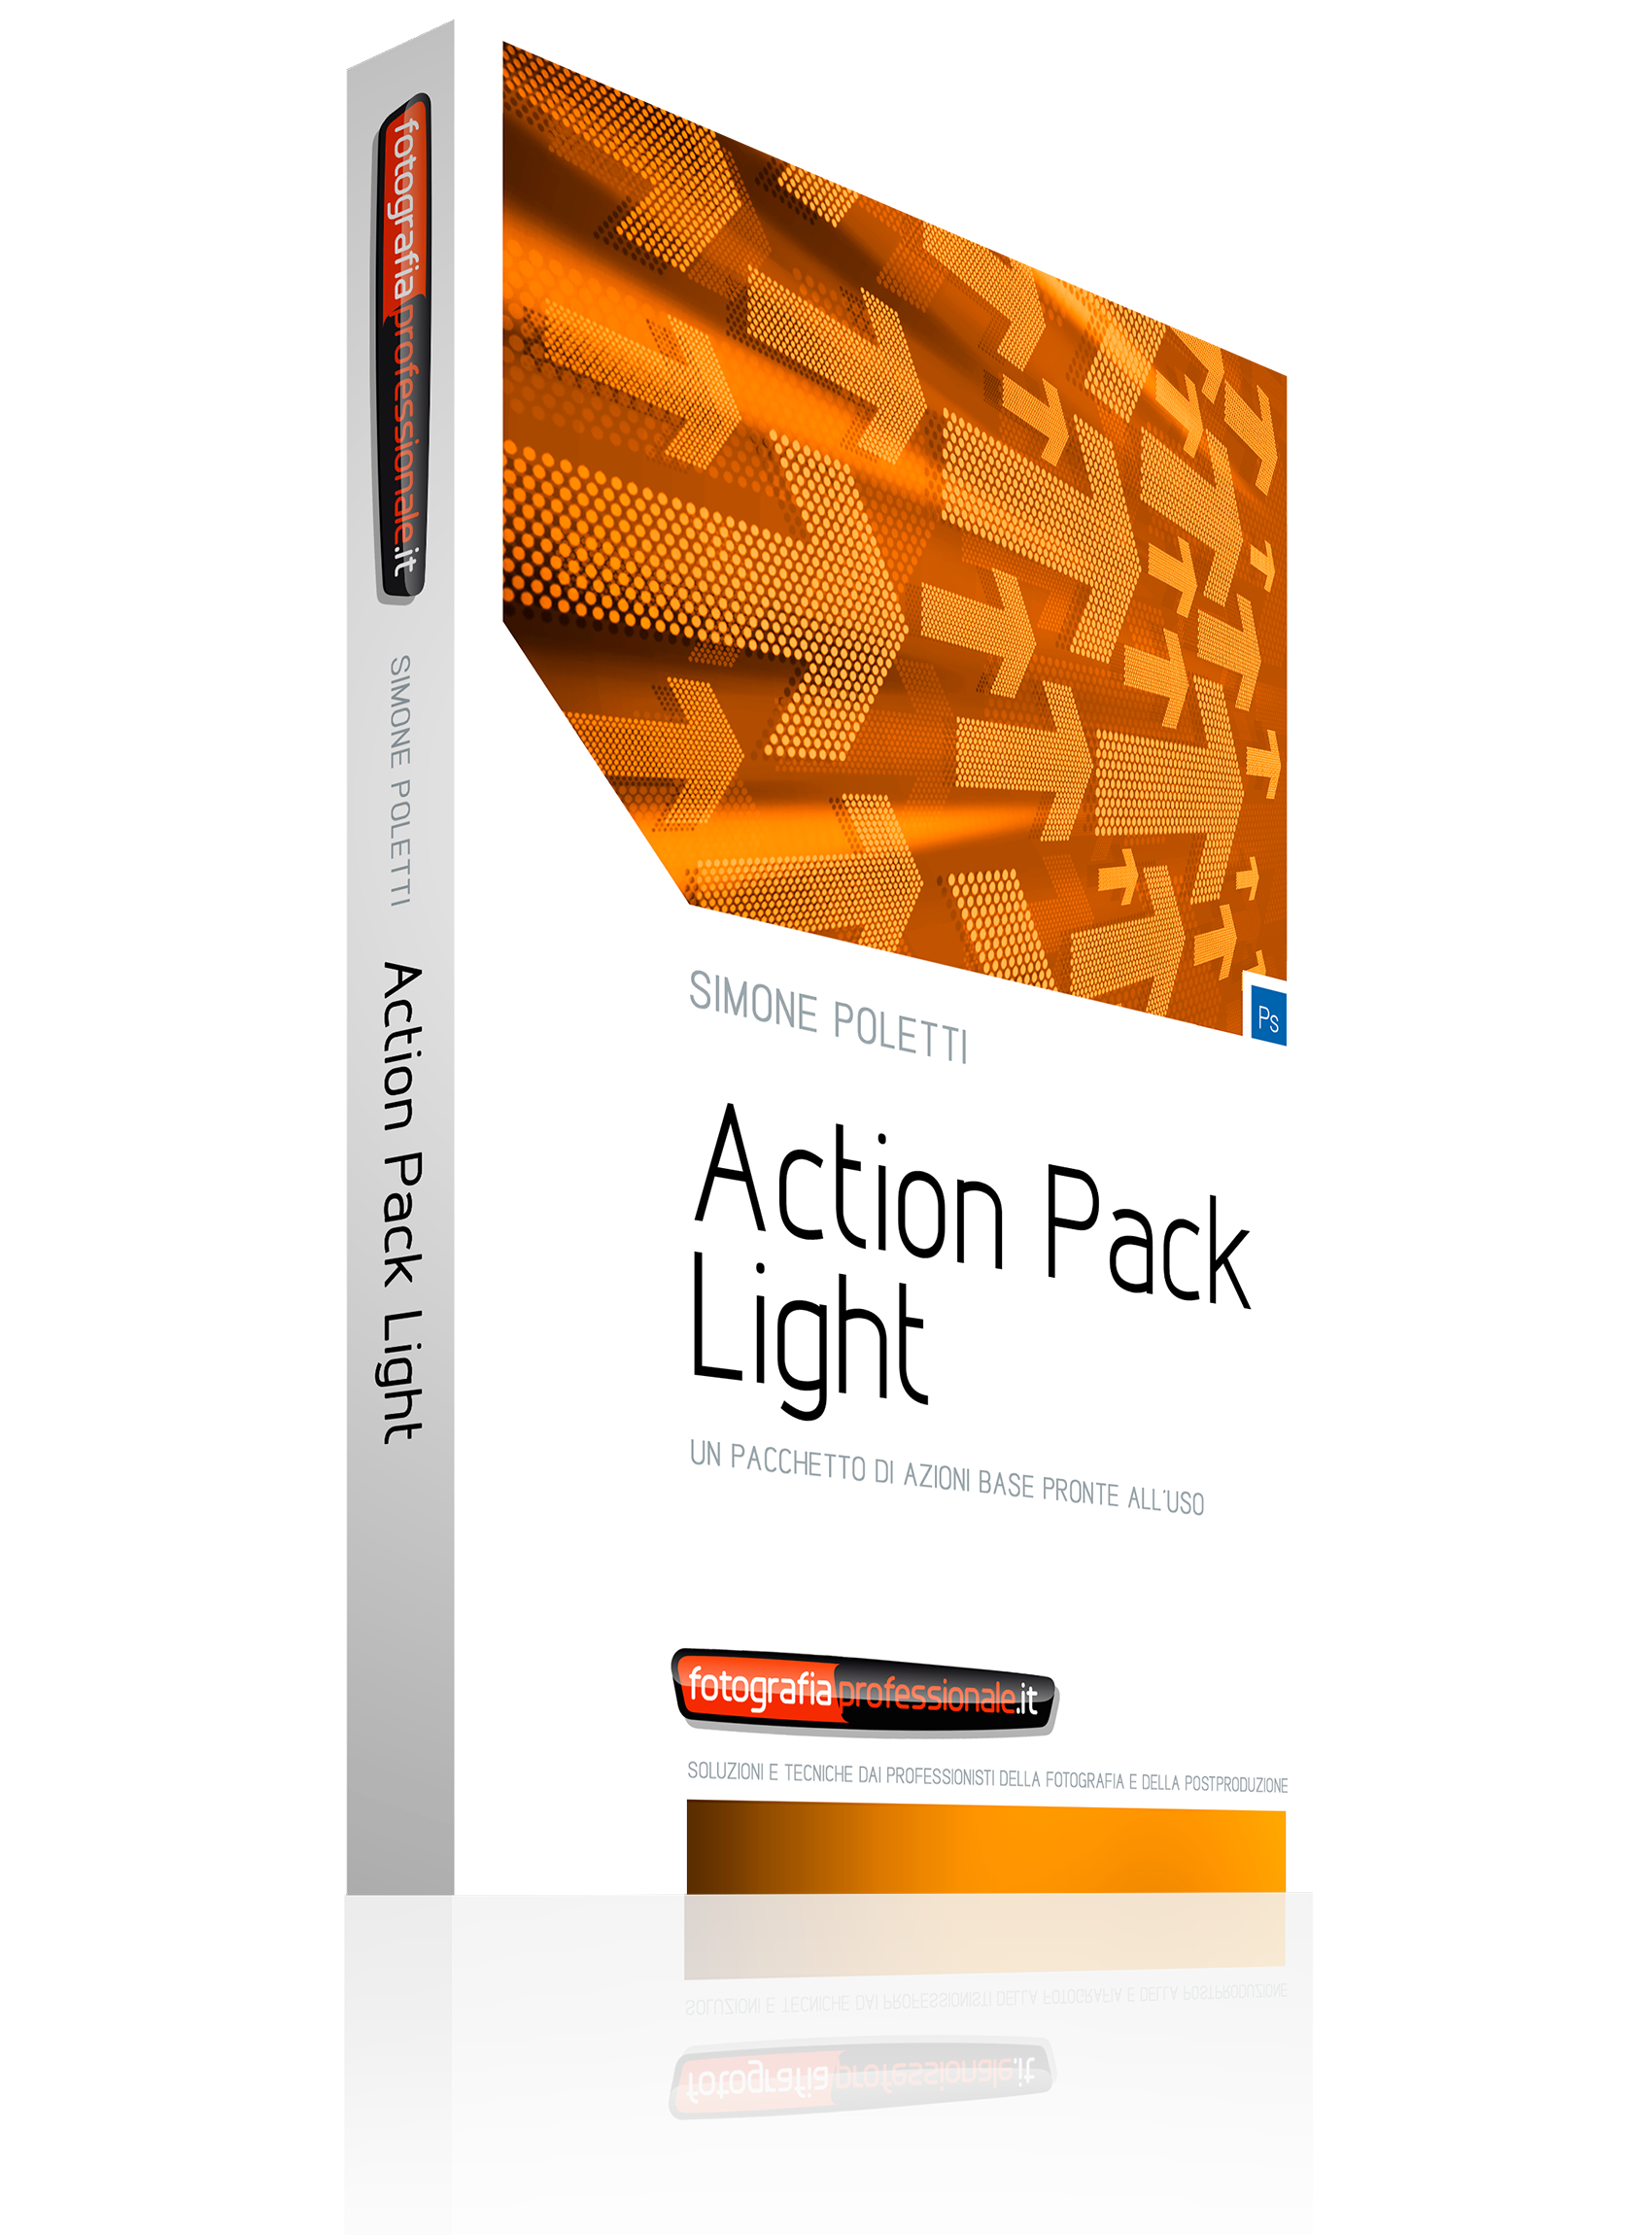 Action Pack Light